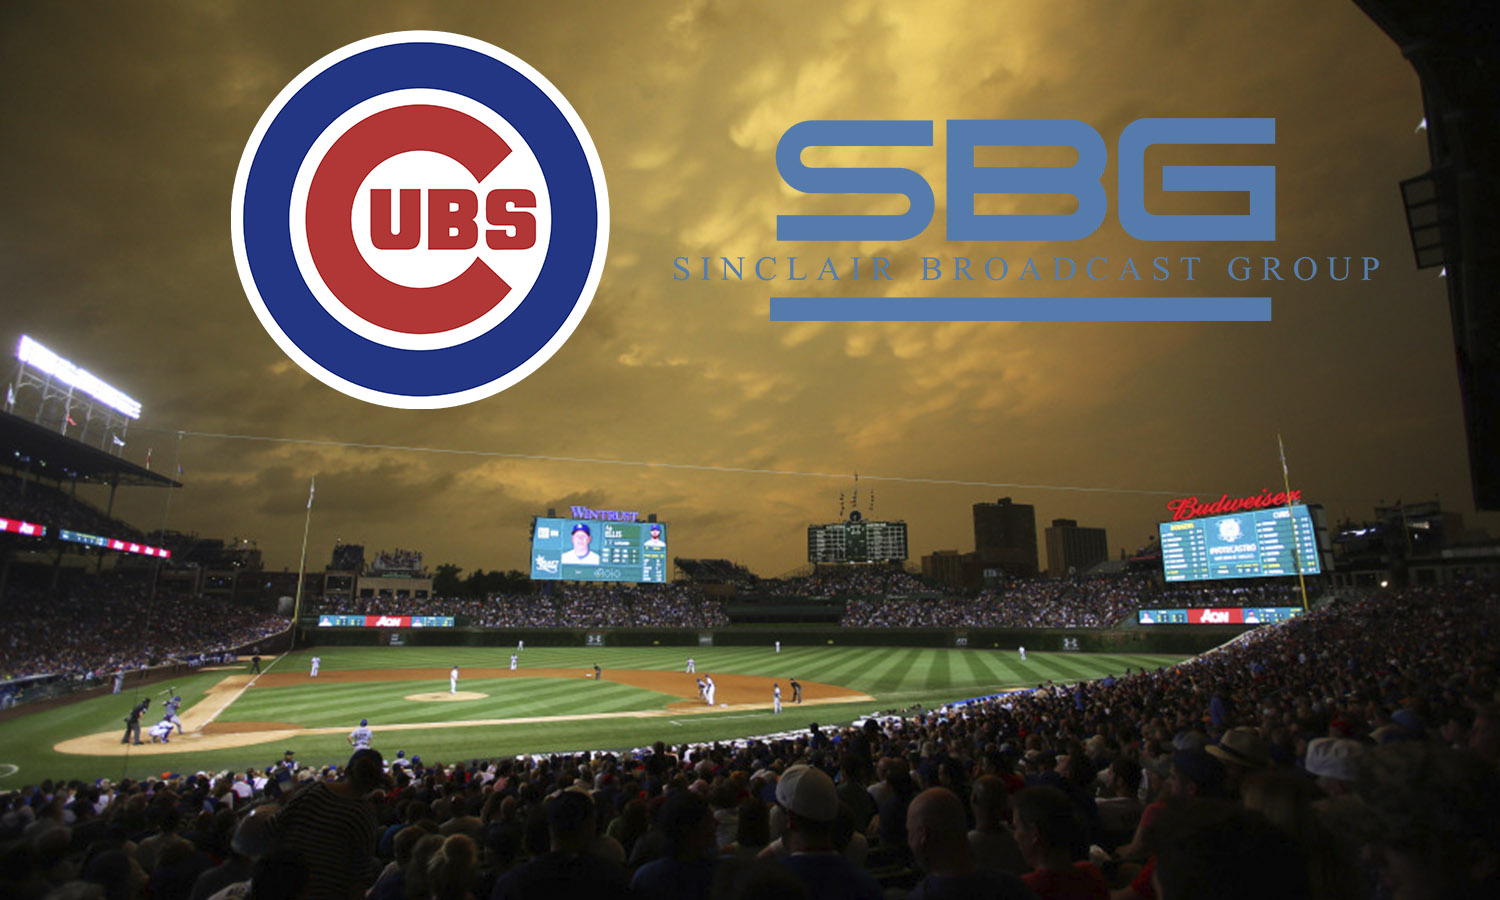 Chicago Cubs Sinclair Team Up To Launch Marquee Sports Network In 2020